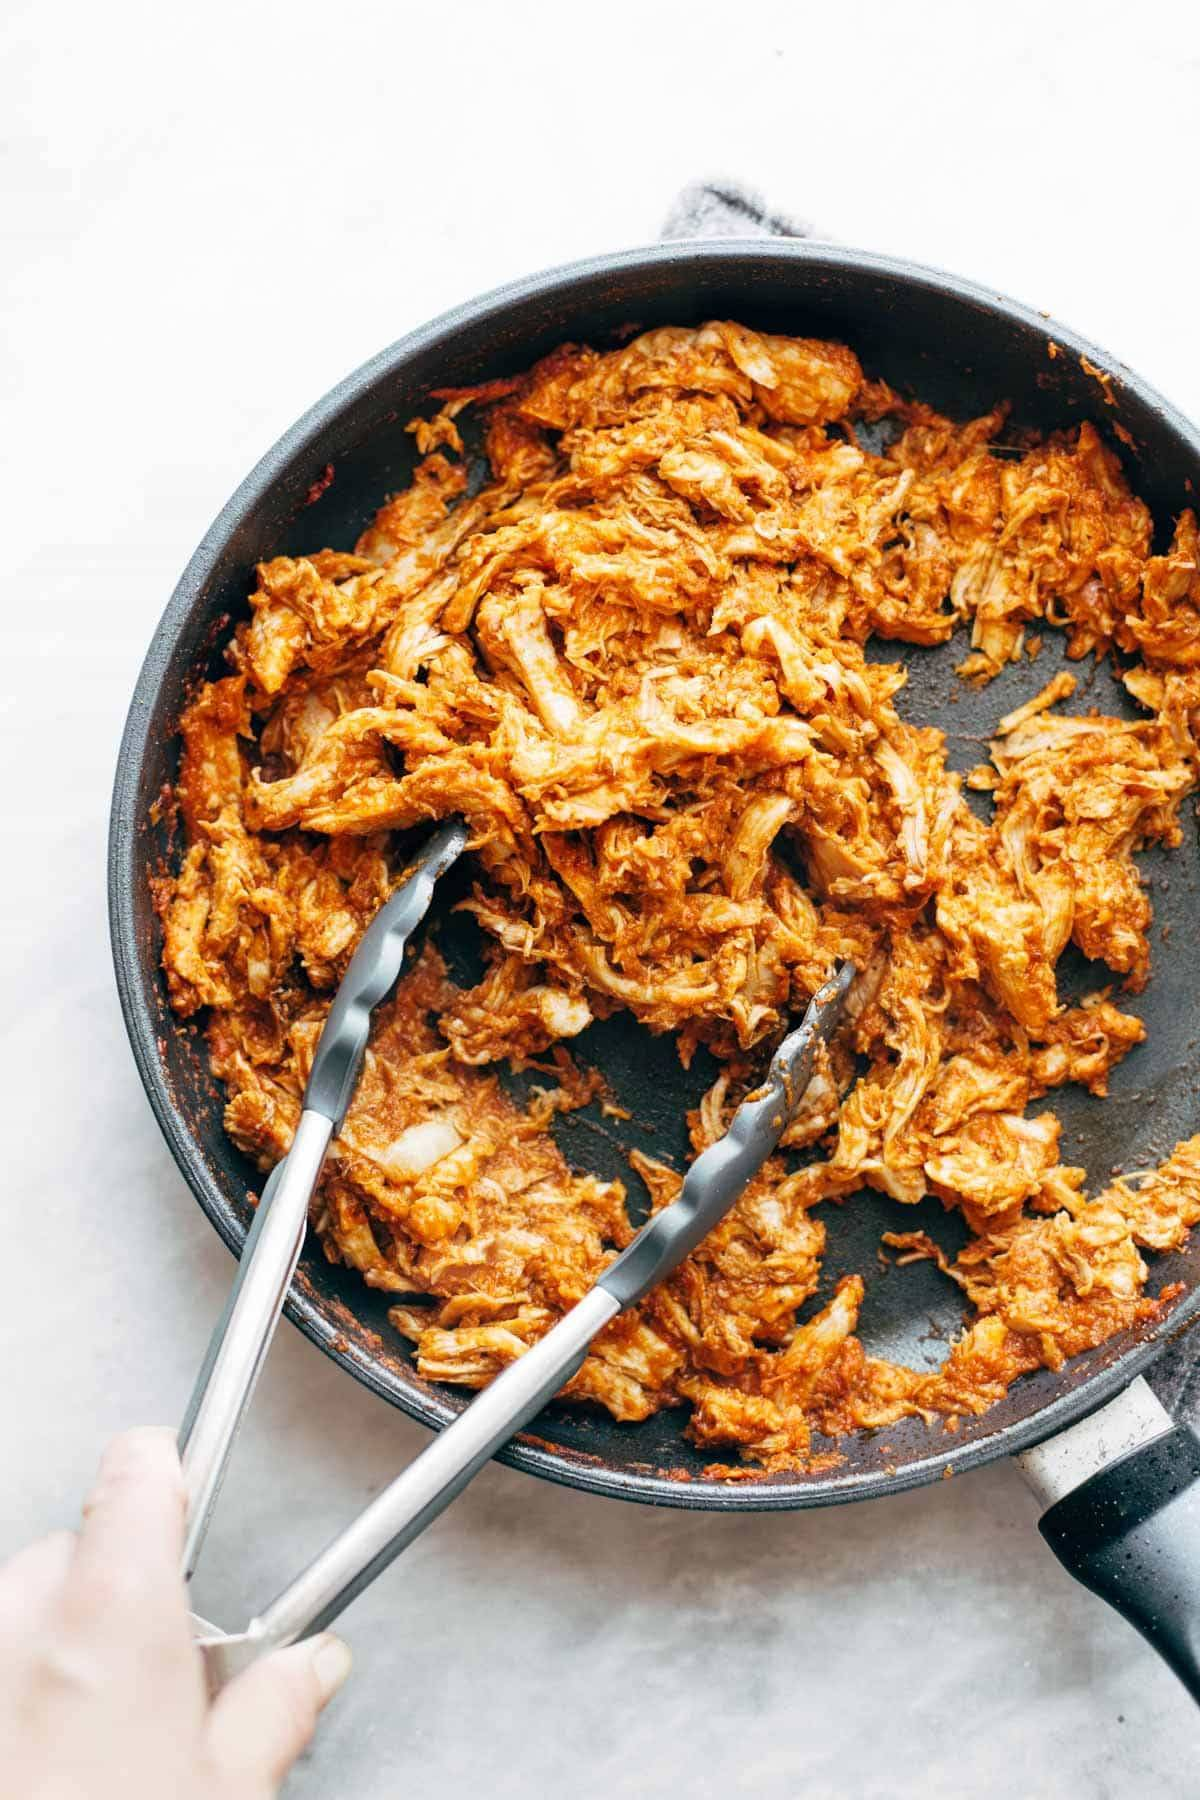 Chicken Tinga in pan with tongs.